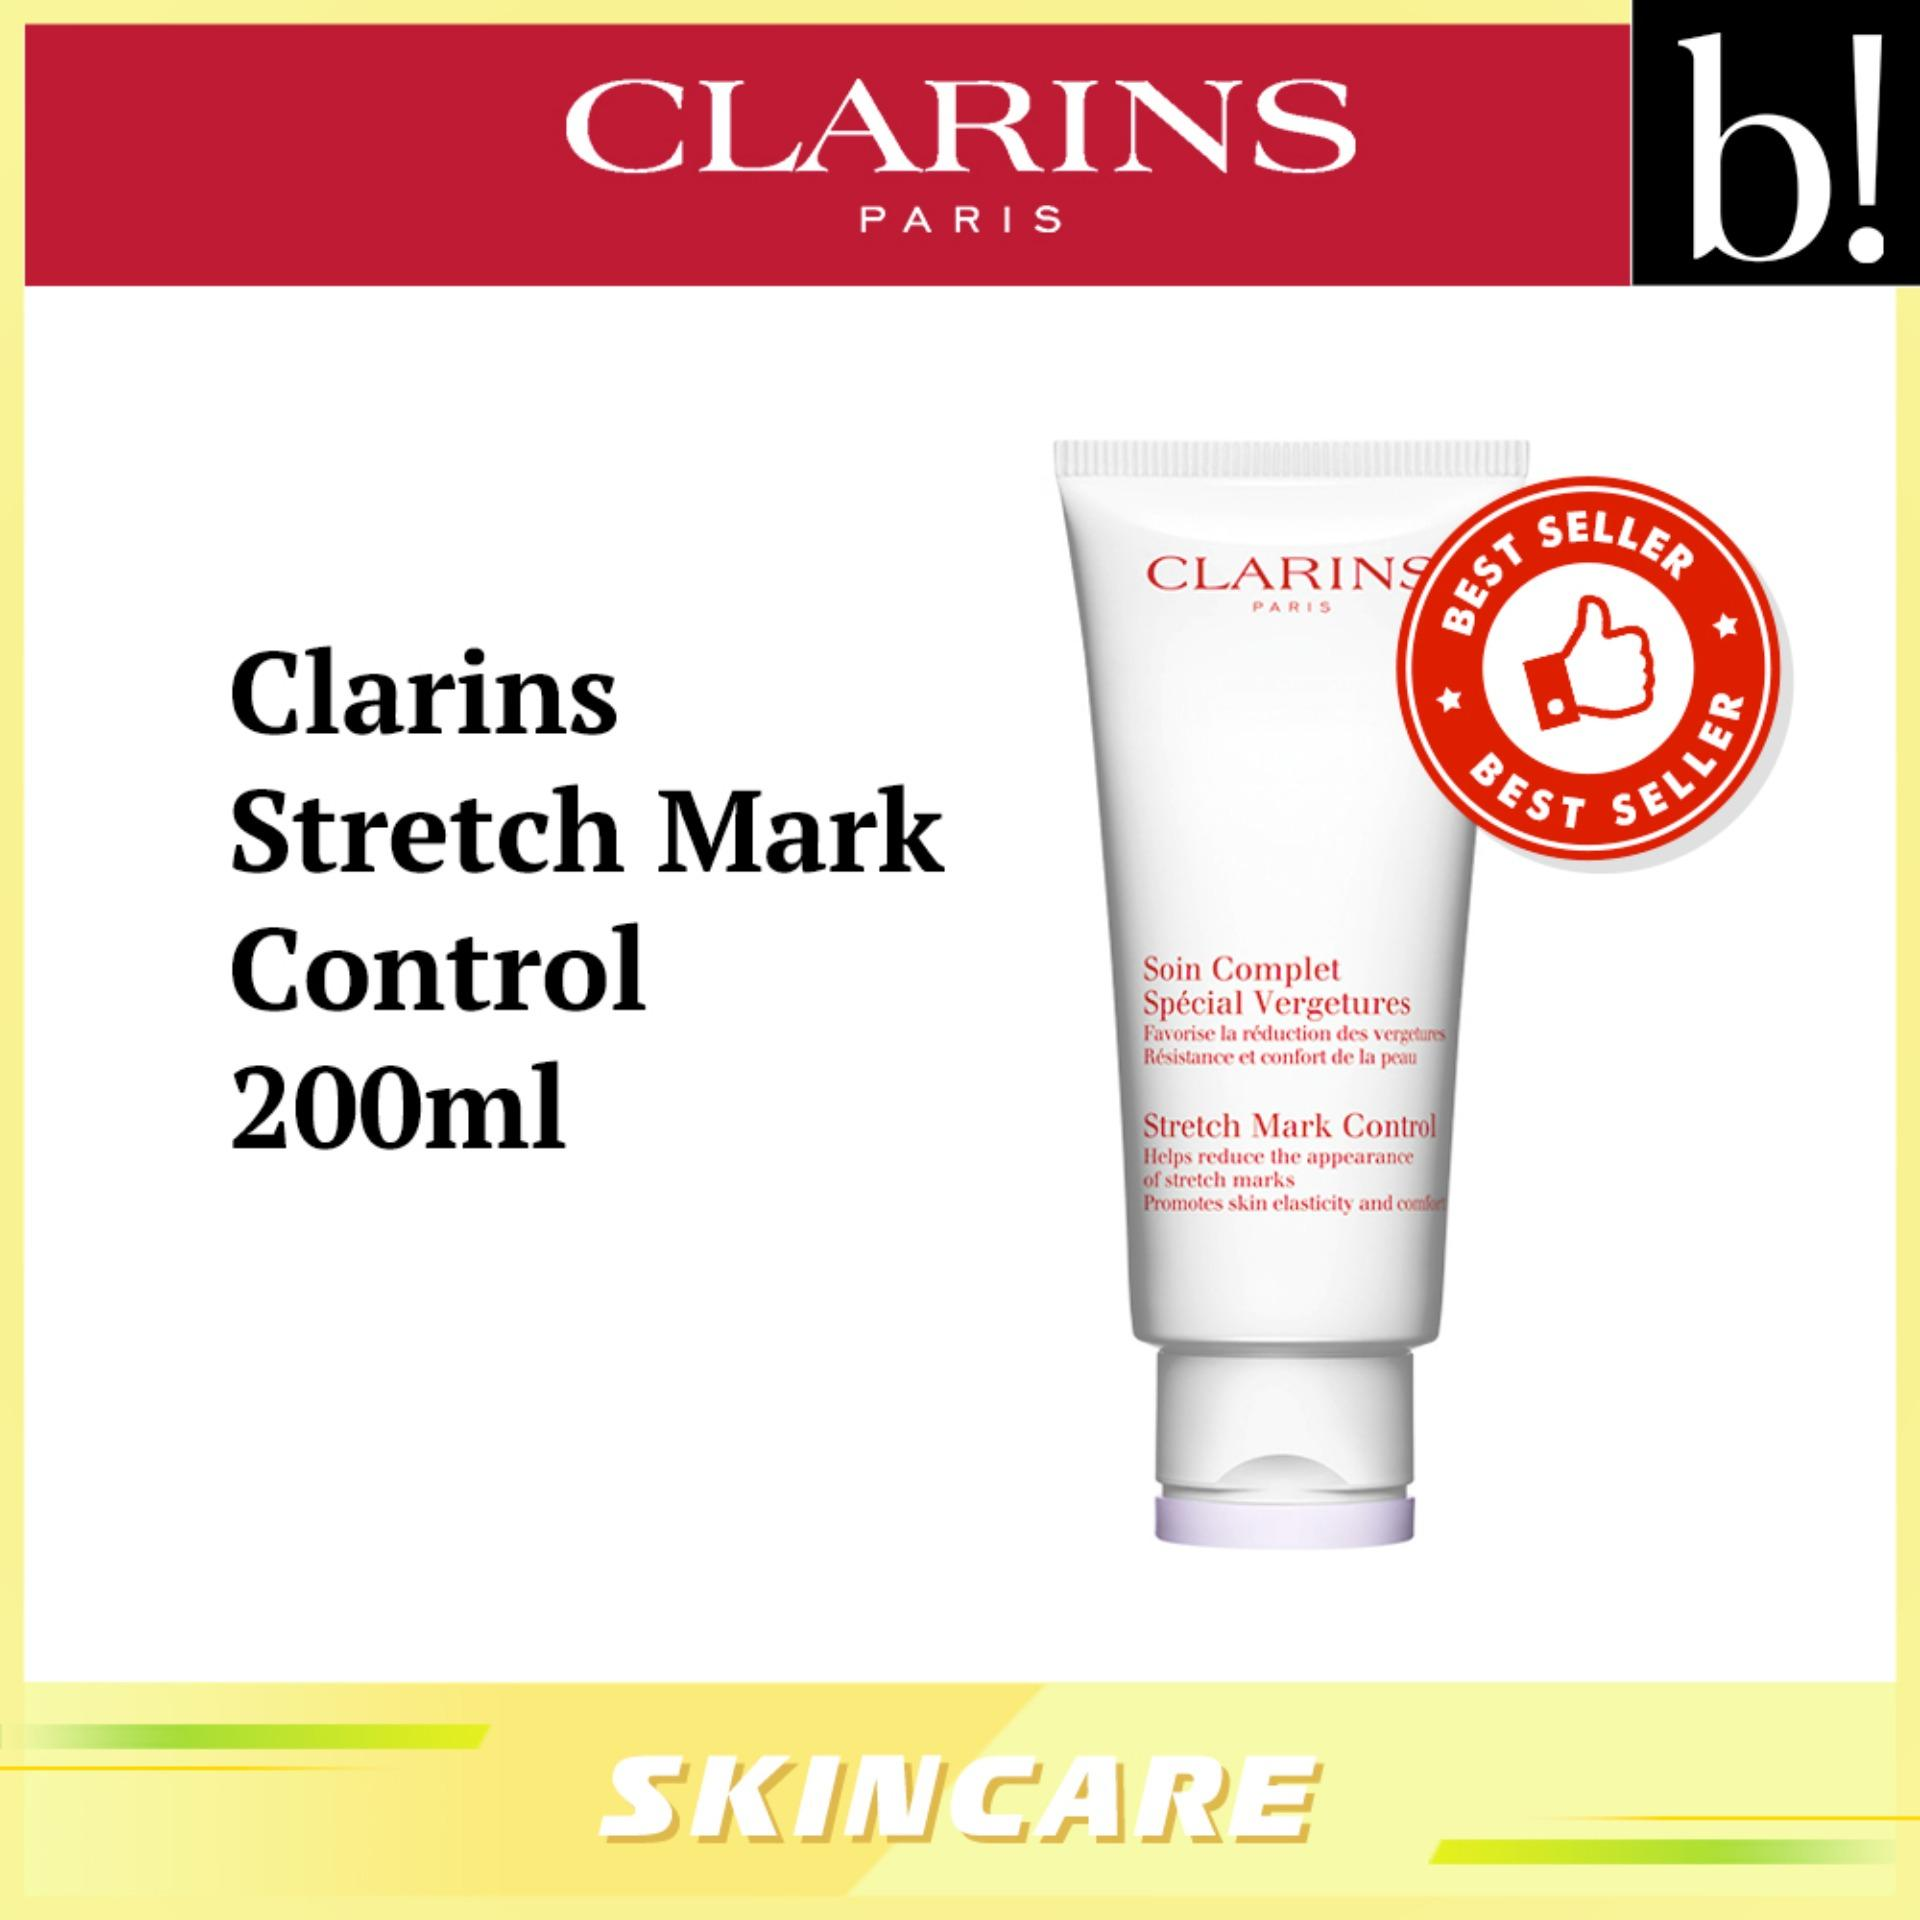 Buy Clarins Eye Makeup Online Body Care Lazada Treatment Oil Tonic 30ml Stretch Mark Control 200ml Beureka